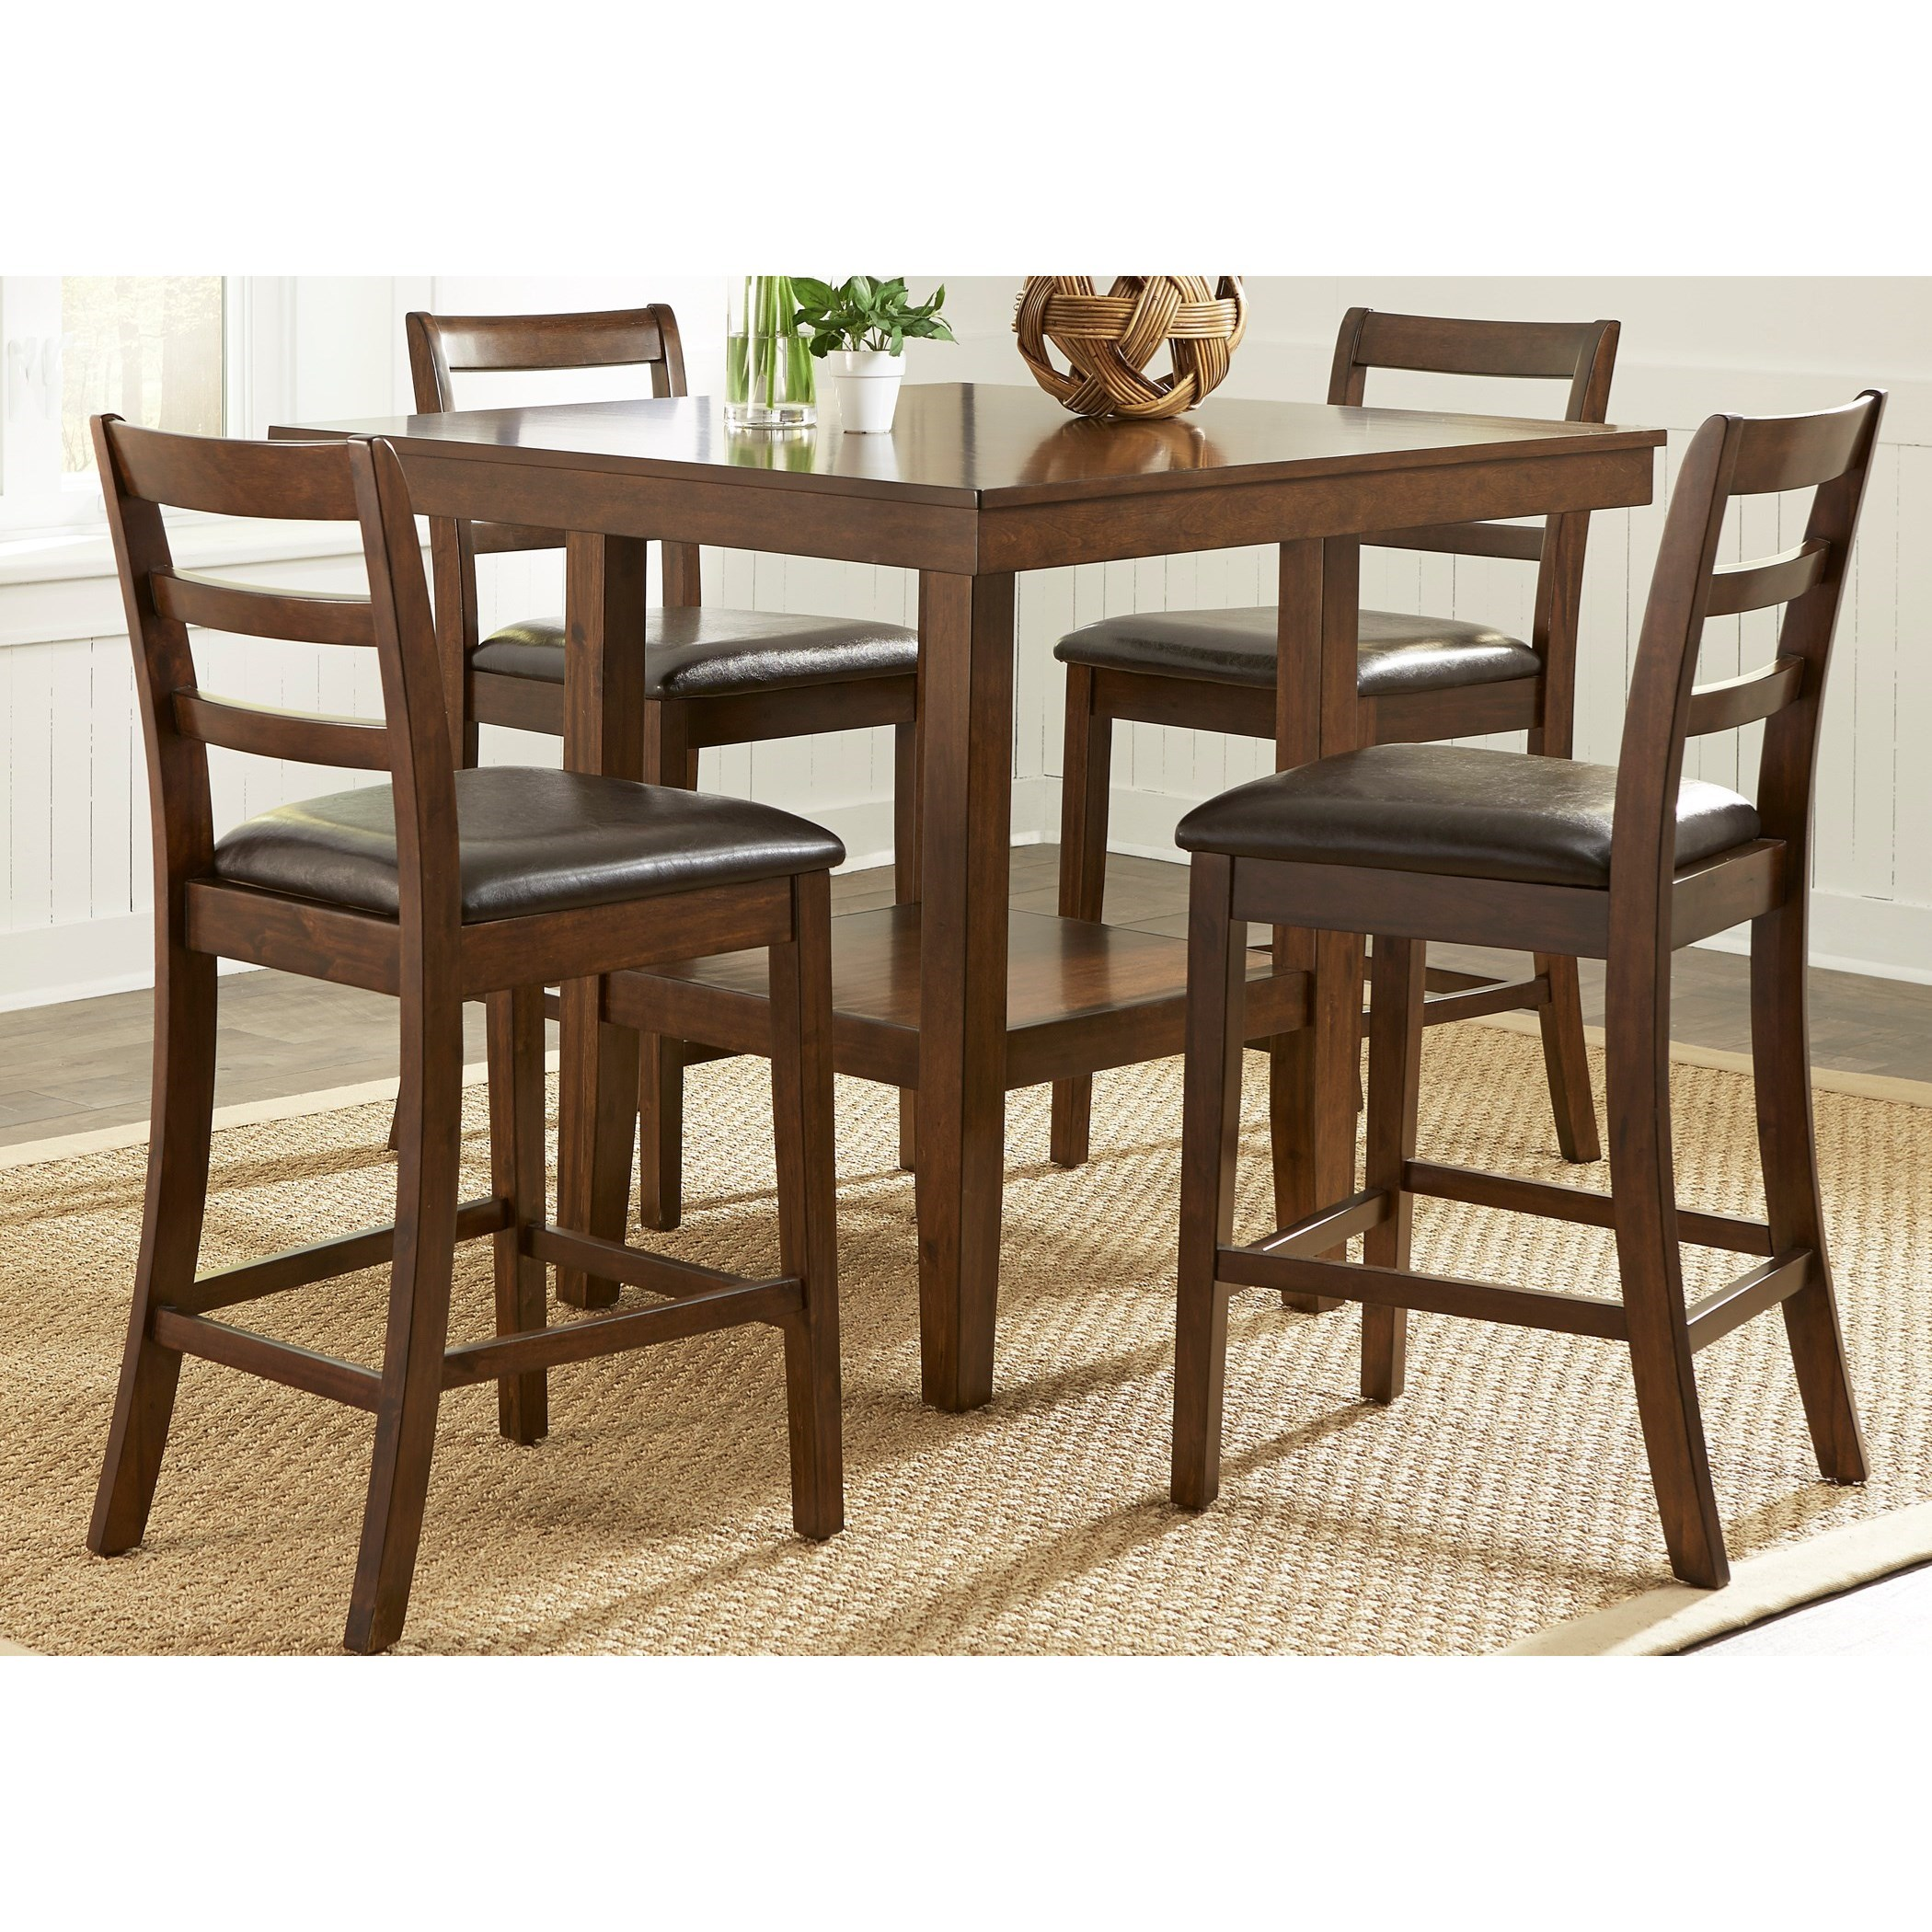 vendor 5349 bradshaw casual dining 32 cd 5gts 5 piece gathering table set becker furniture. Black Bedroom Furniture Sets. Home Design Ideas